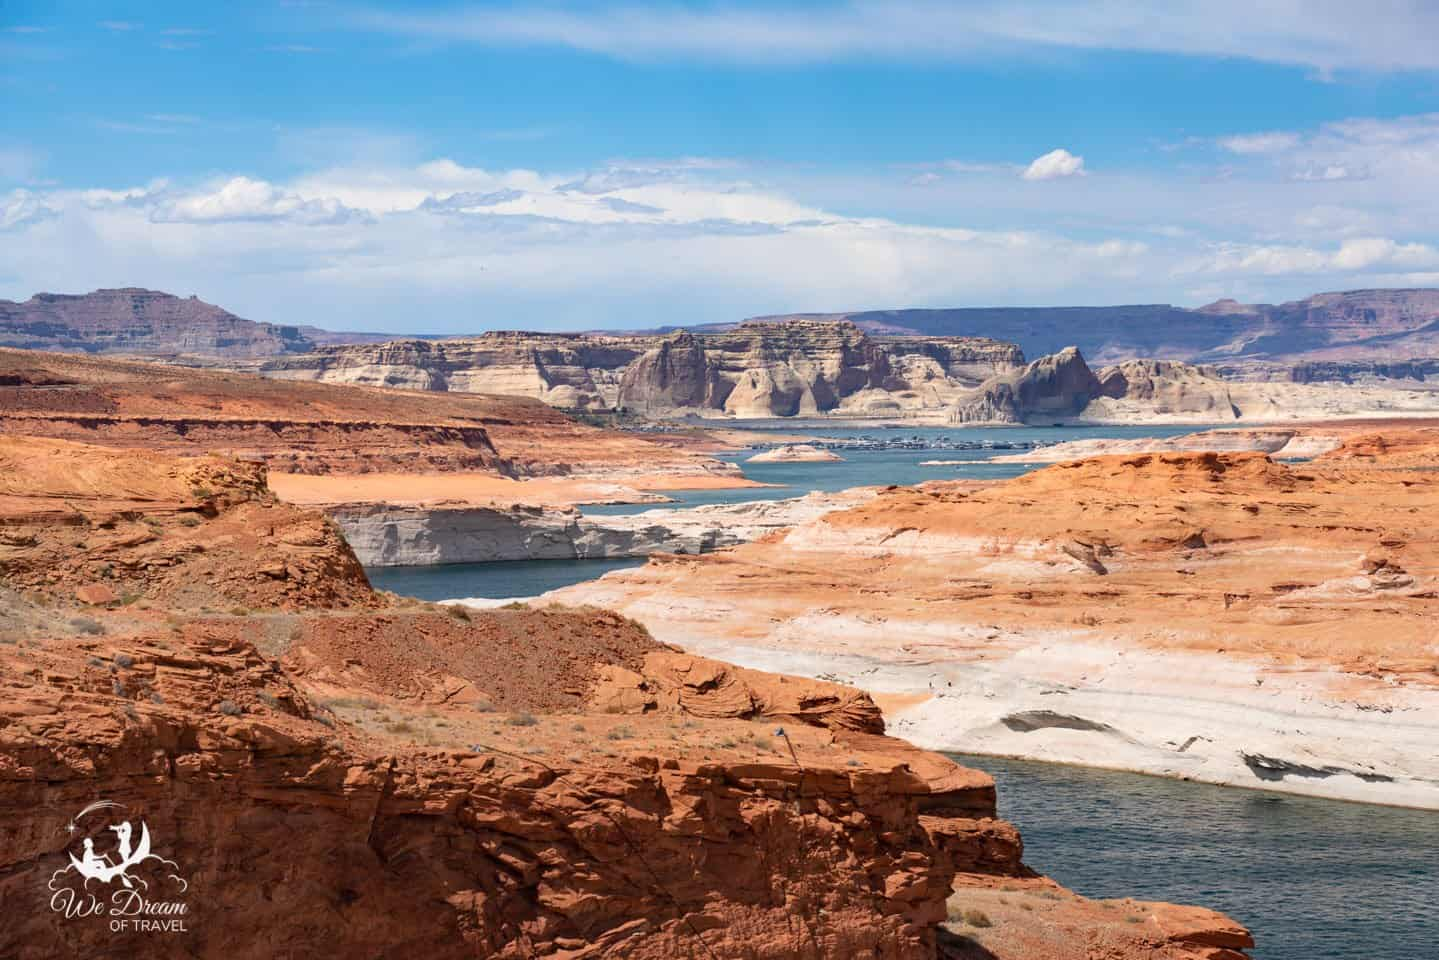 The turquoise water and orange sandstone of Lake Powell combine for a distinct, unique landscape as beautiful as any you'll find.